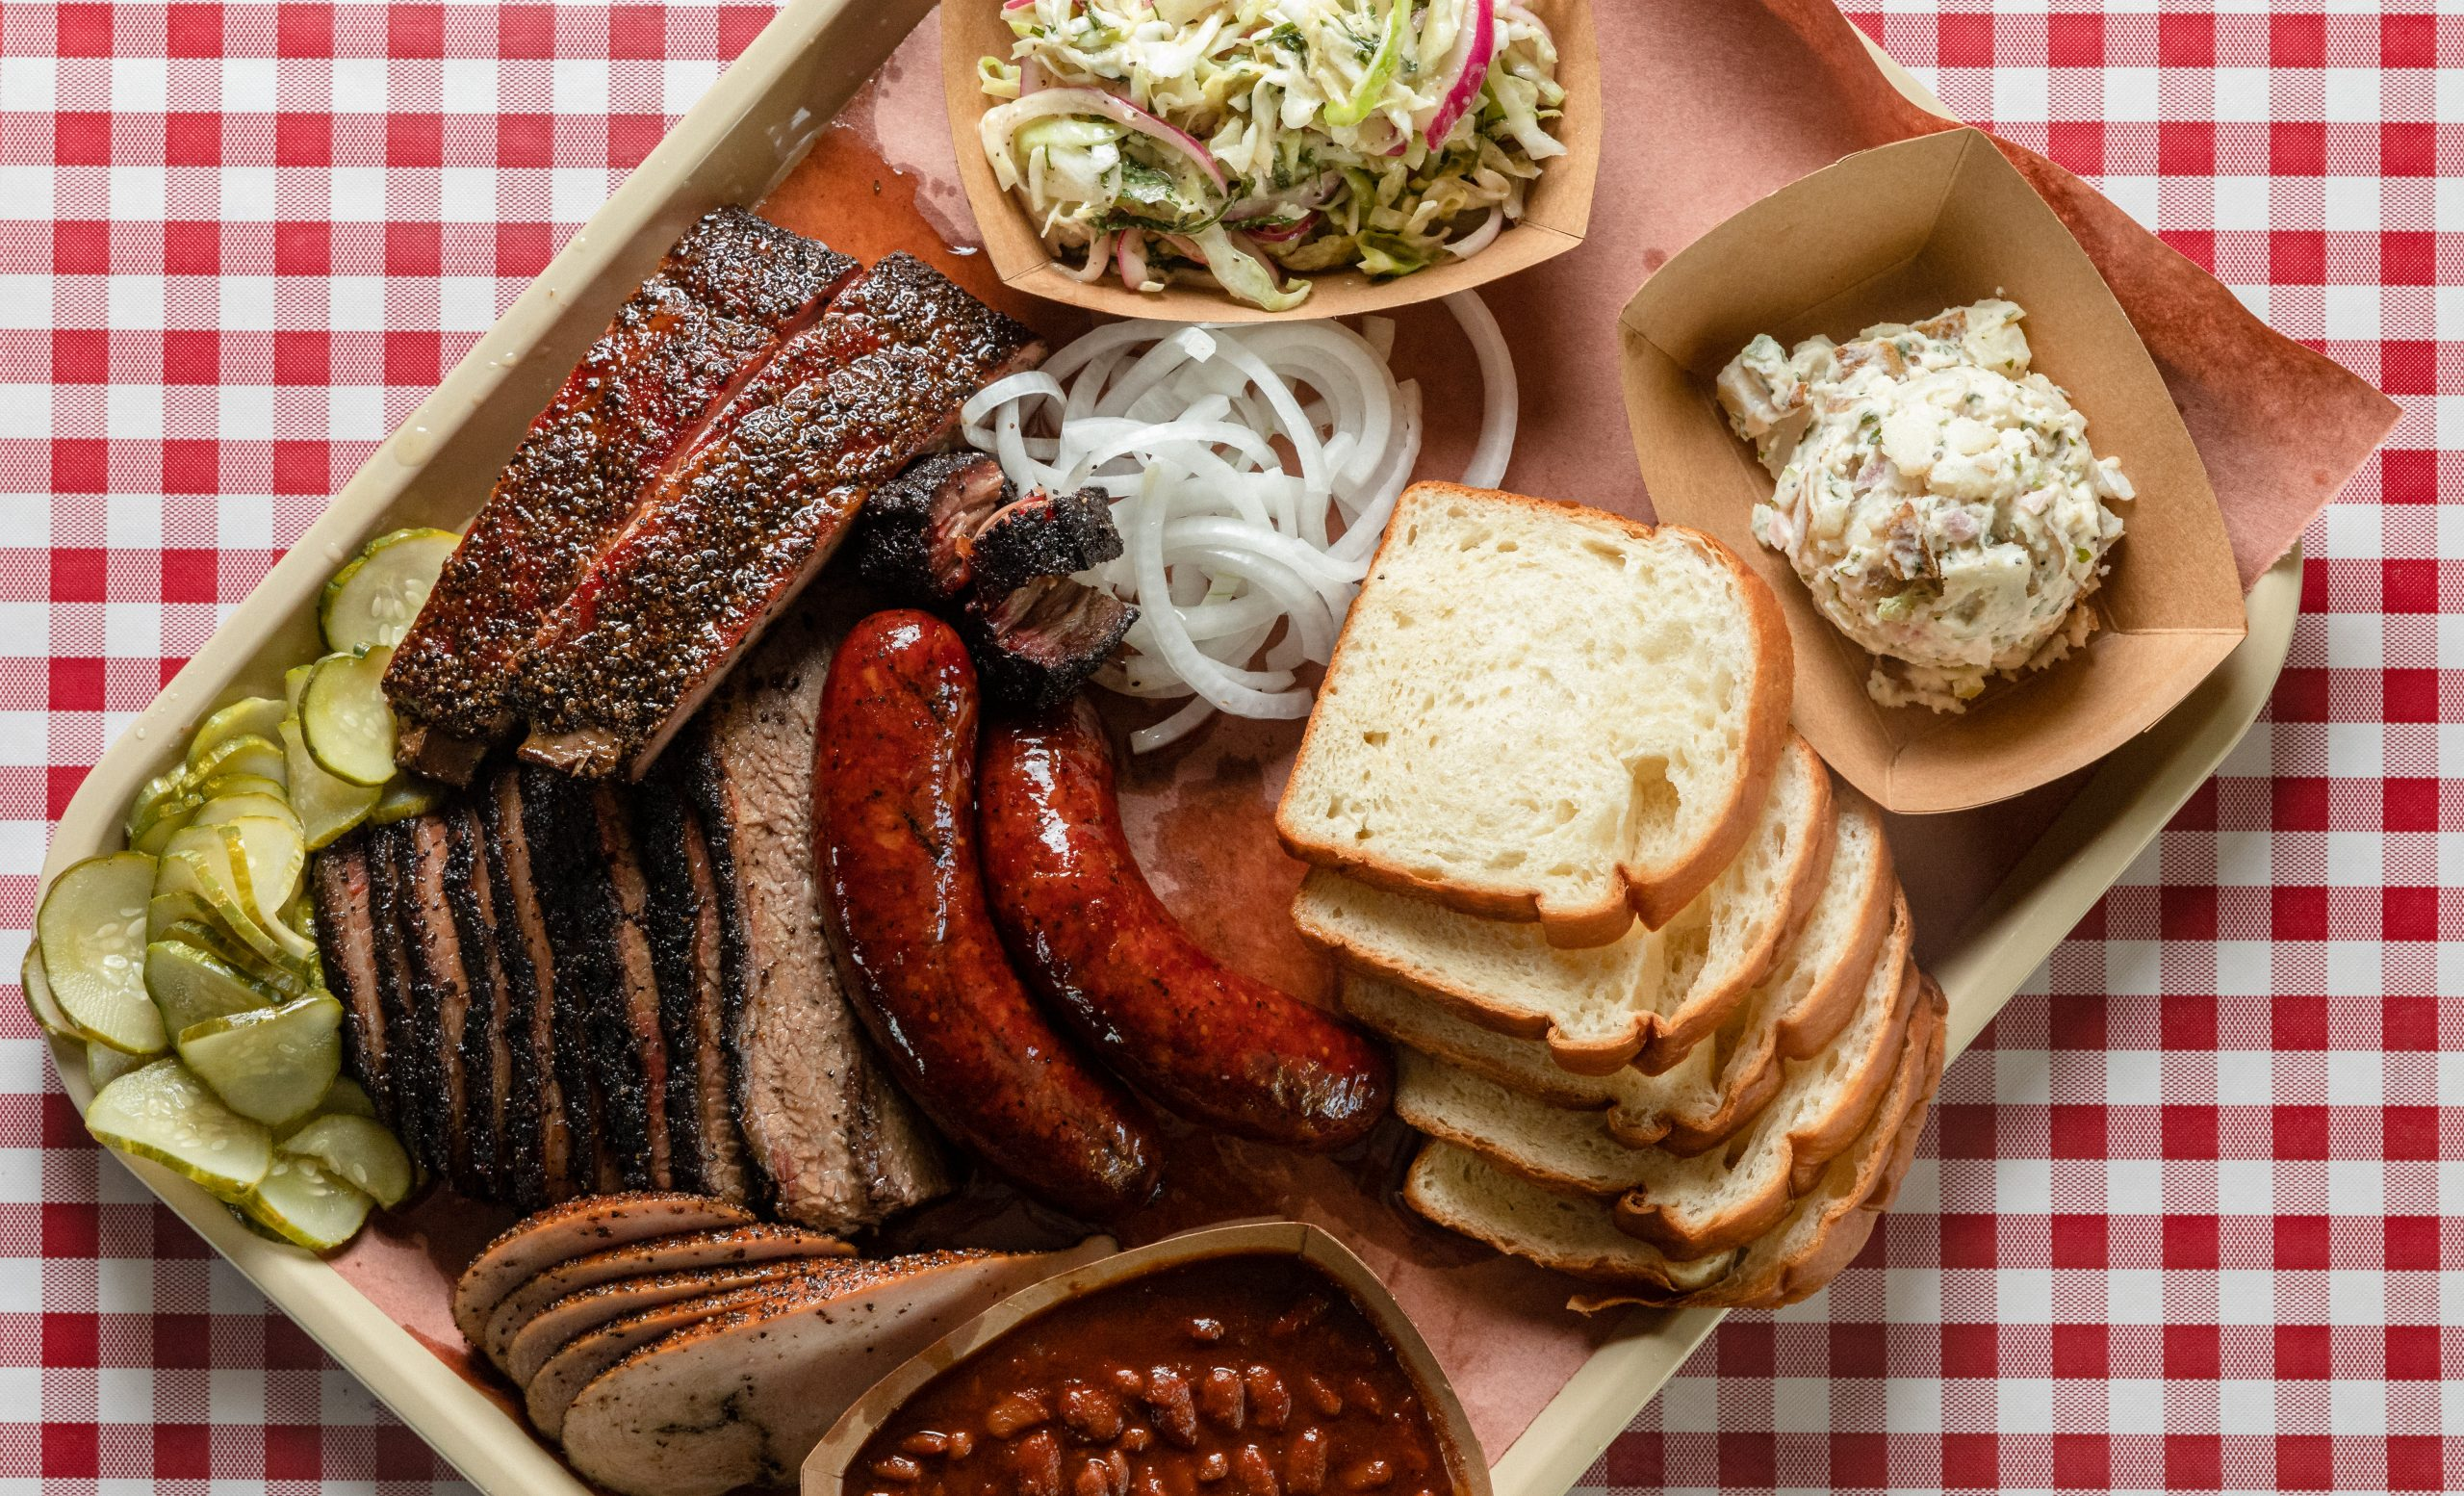 tray of texas bbq featuring brisket ribs sausage as seen from above